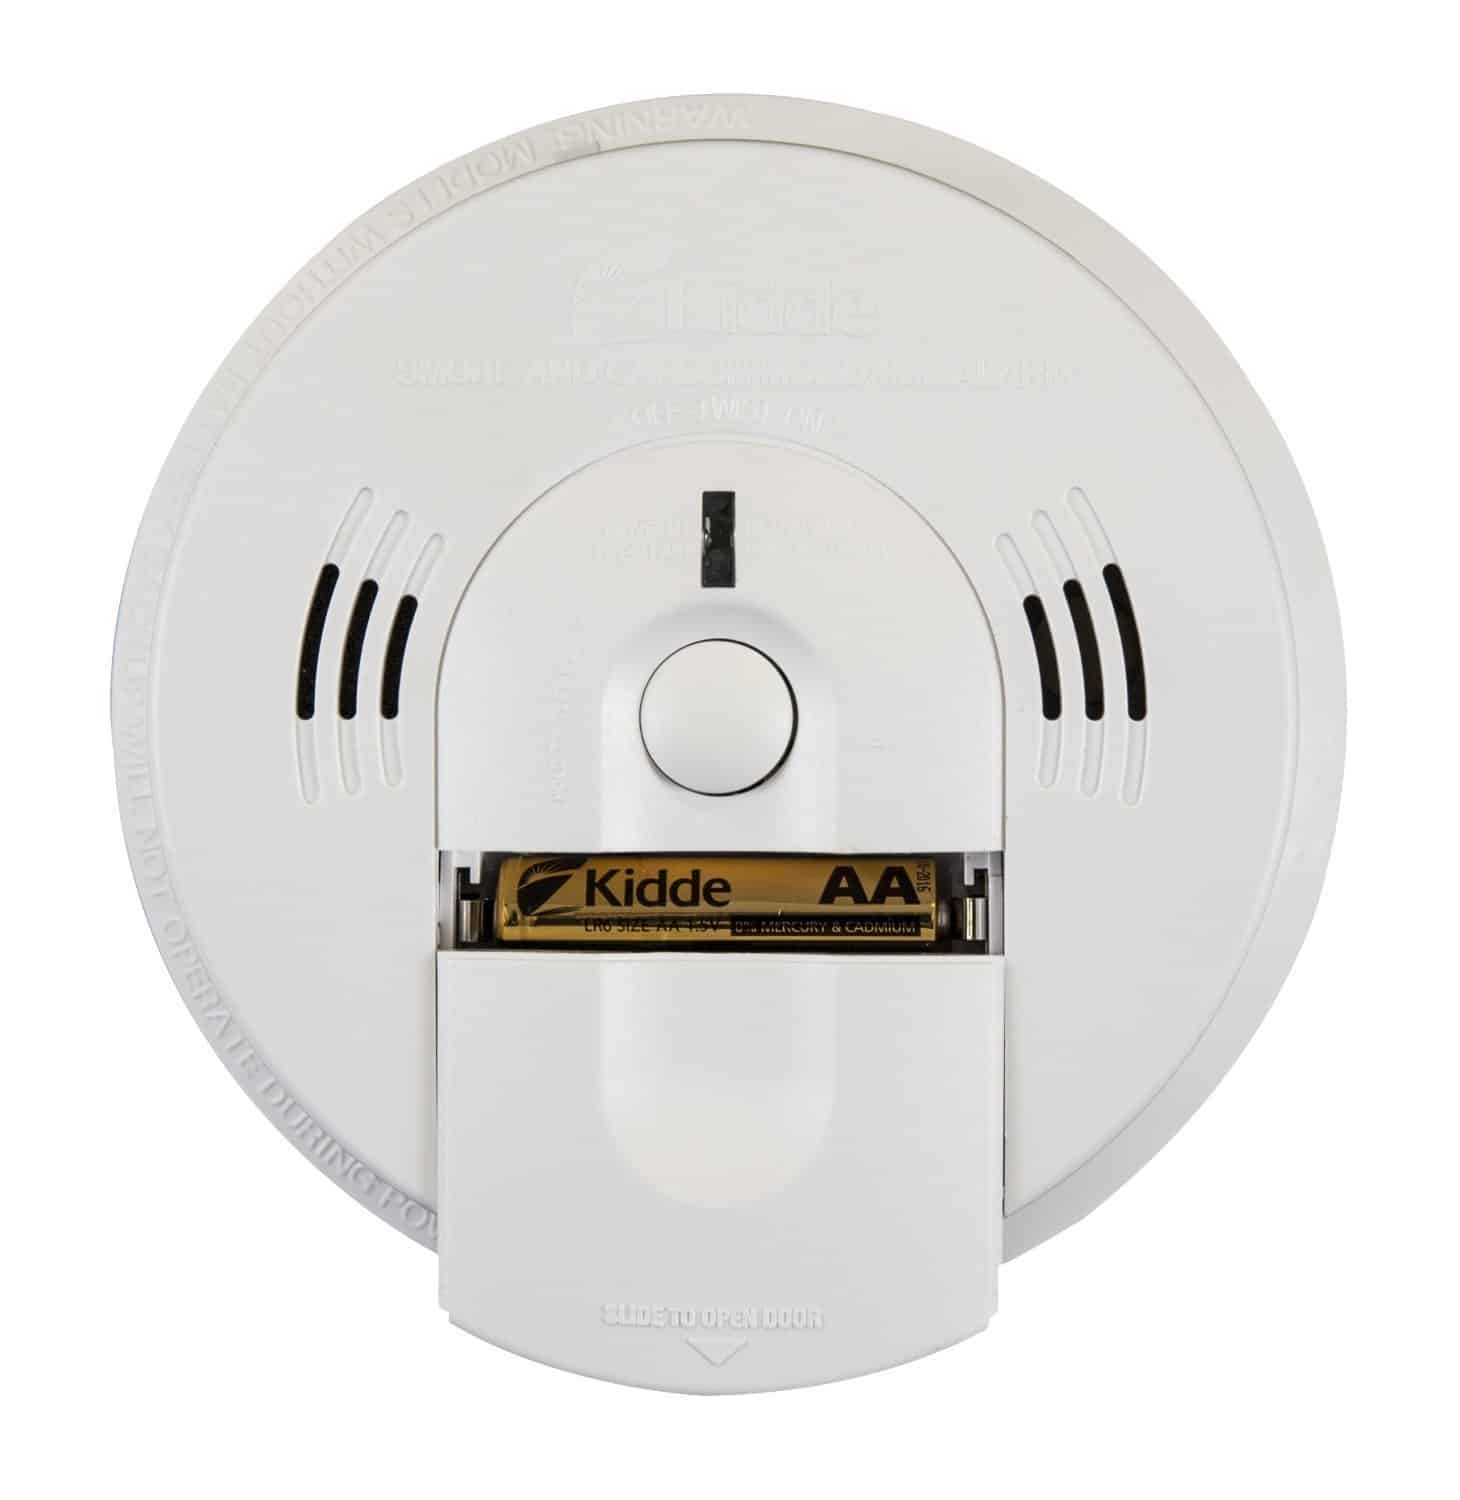 Top 10 Best Smoke Detectors Reviews in 2018 | Smoke And Fire